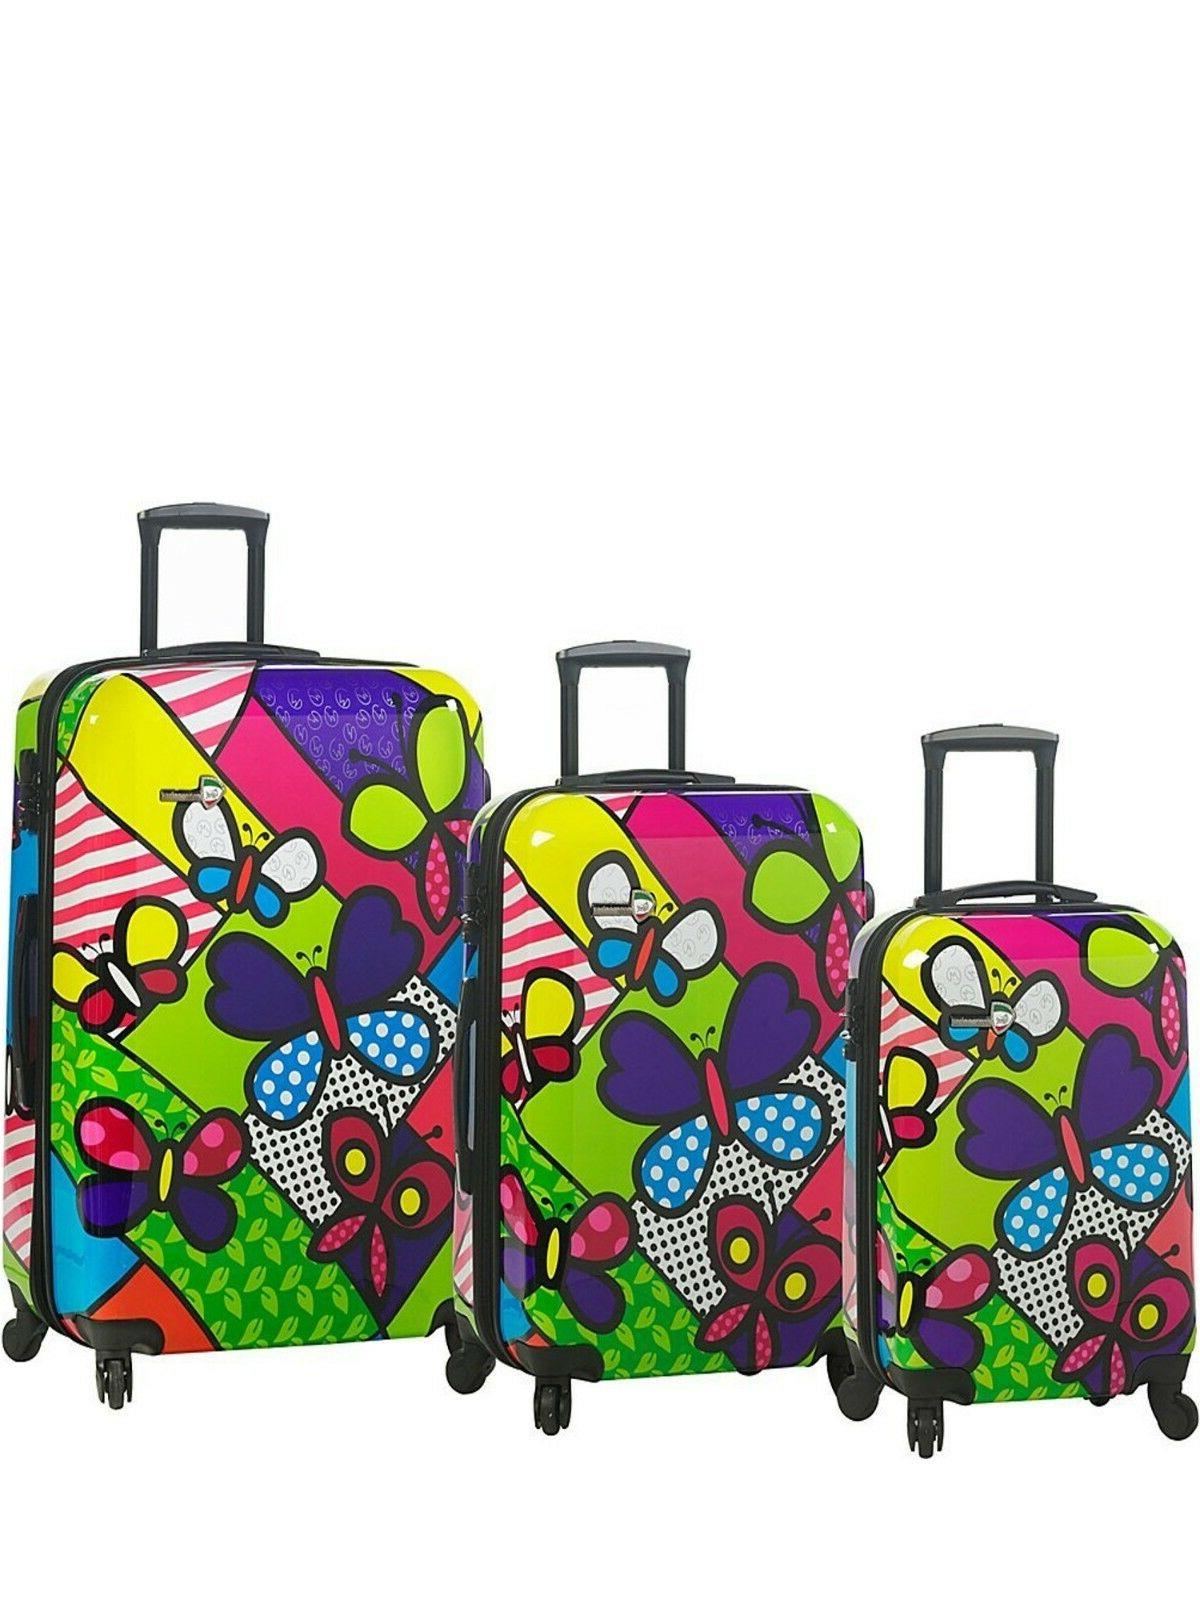 new italy butterflies hardside spinner luggage set